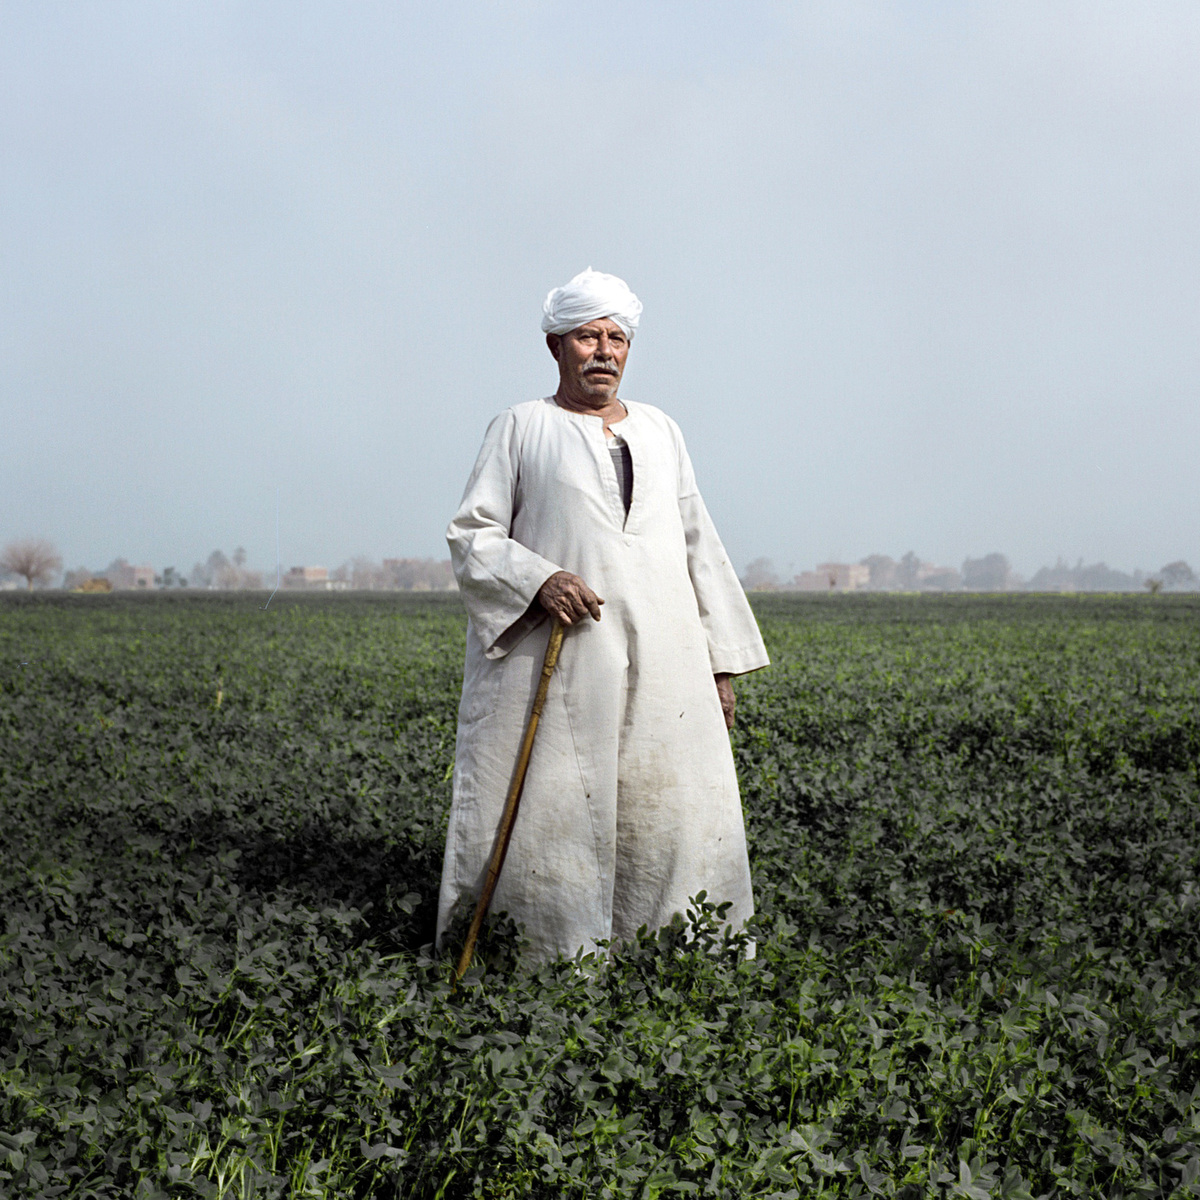 Mohamed Abdelfattah Ismail, 71, a farmer his whole life. His children have now taken over farming the family's land.